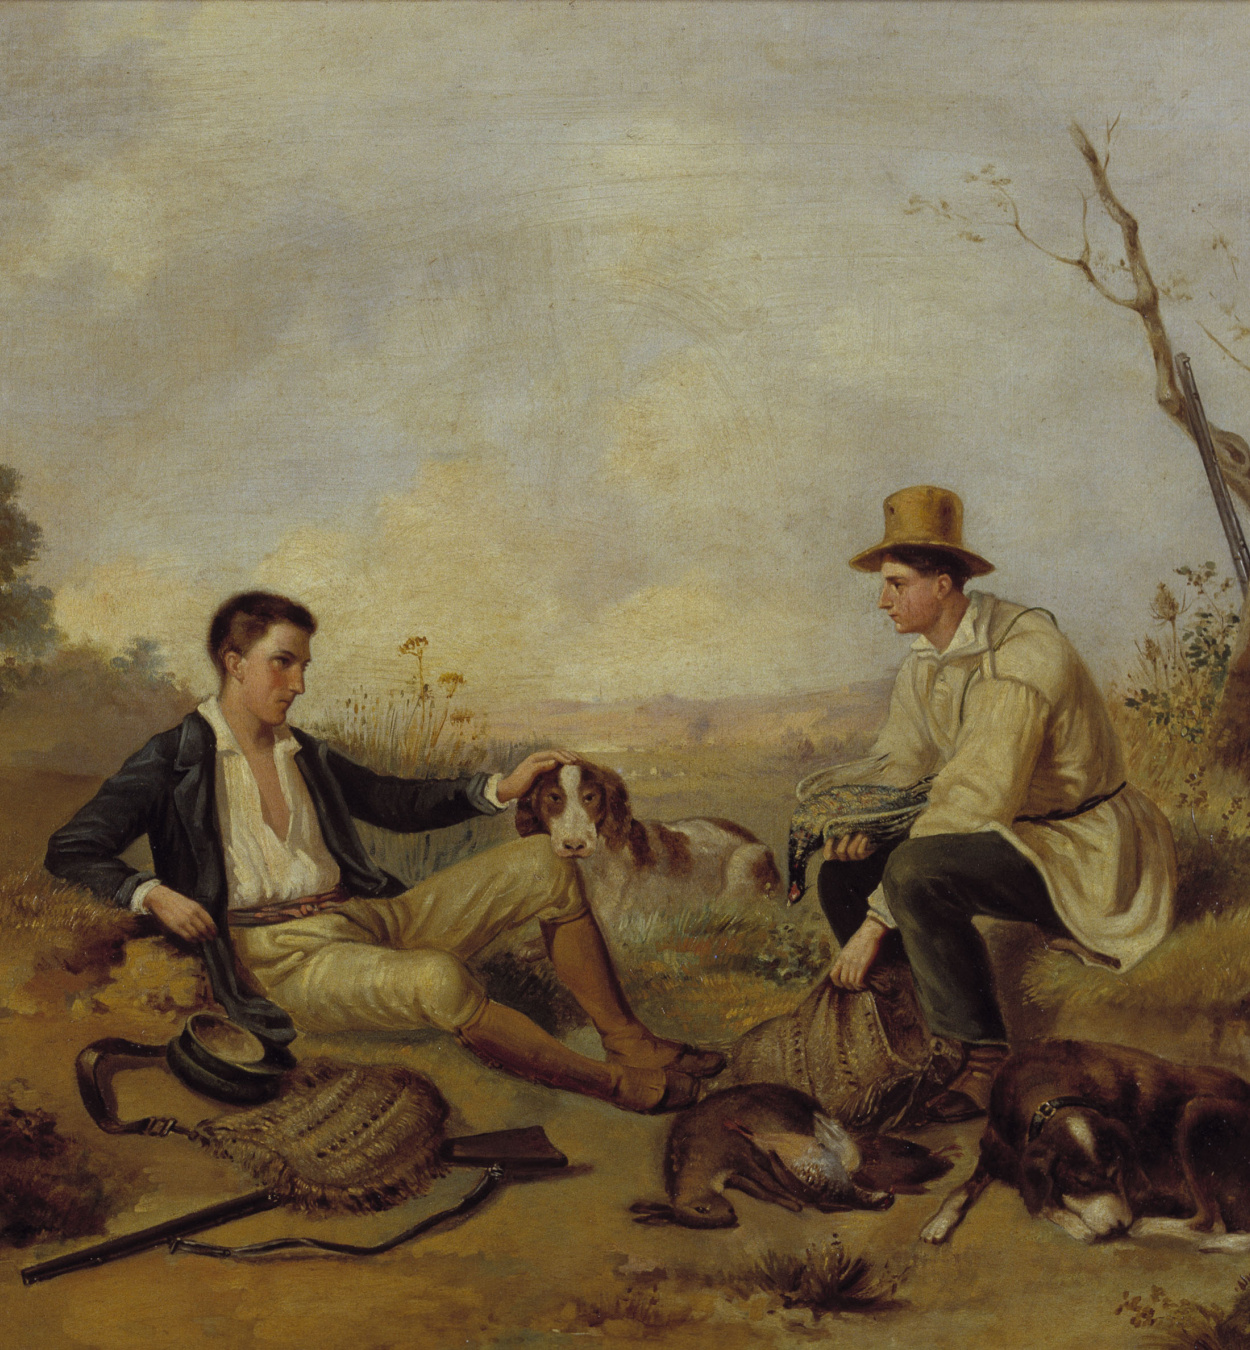 Marià Fortuny - A Break in the Hunting - Barcelona, 1857